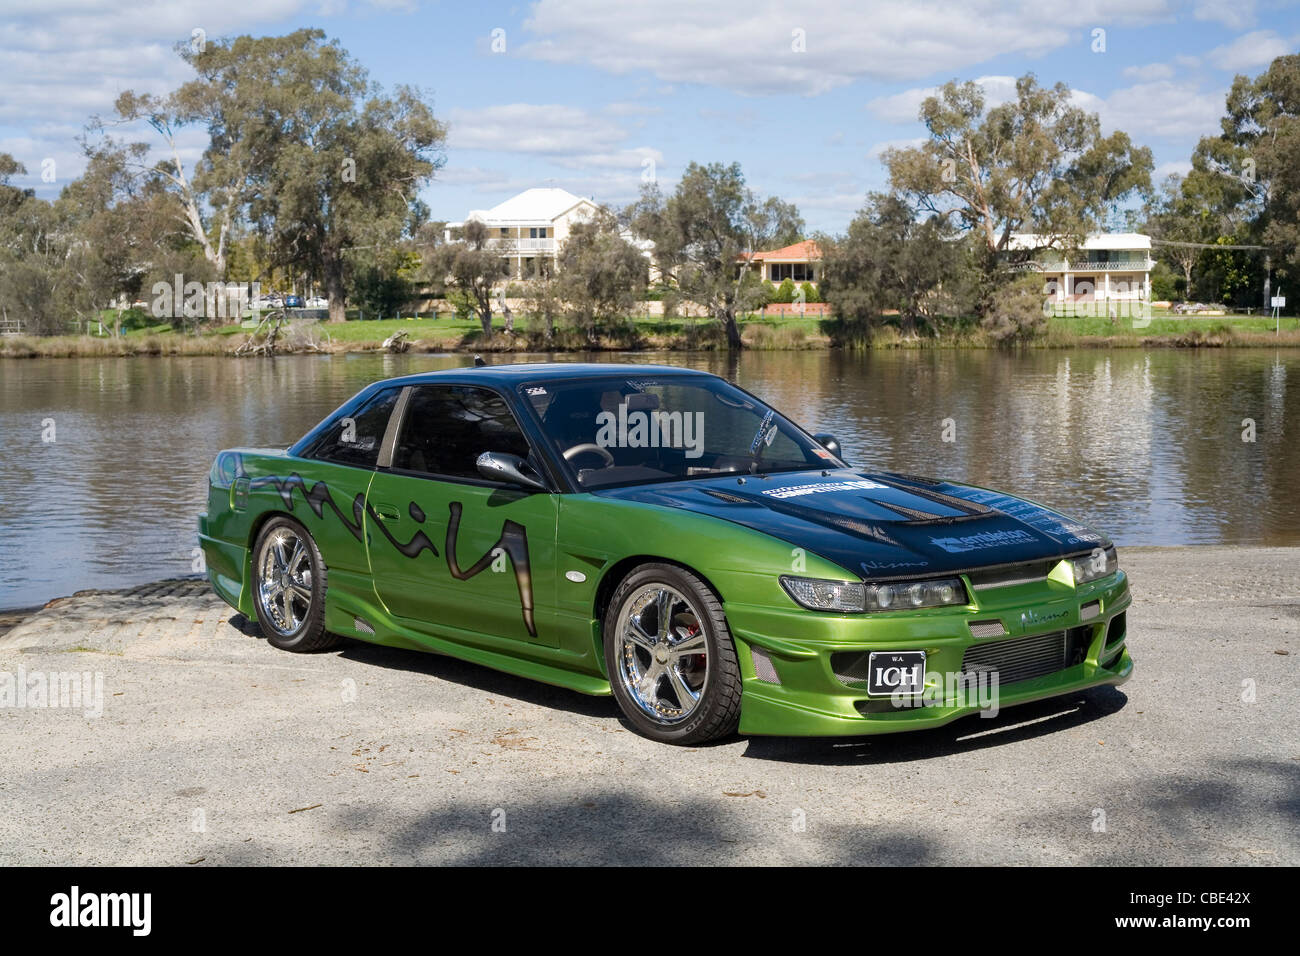 Modified And Custom Nissan 180SX S13 Silvia Boy Racer Sports Car   Stock  Image